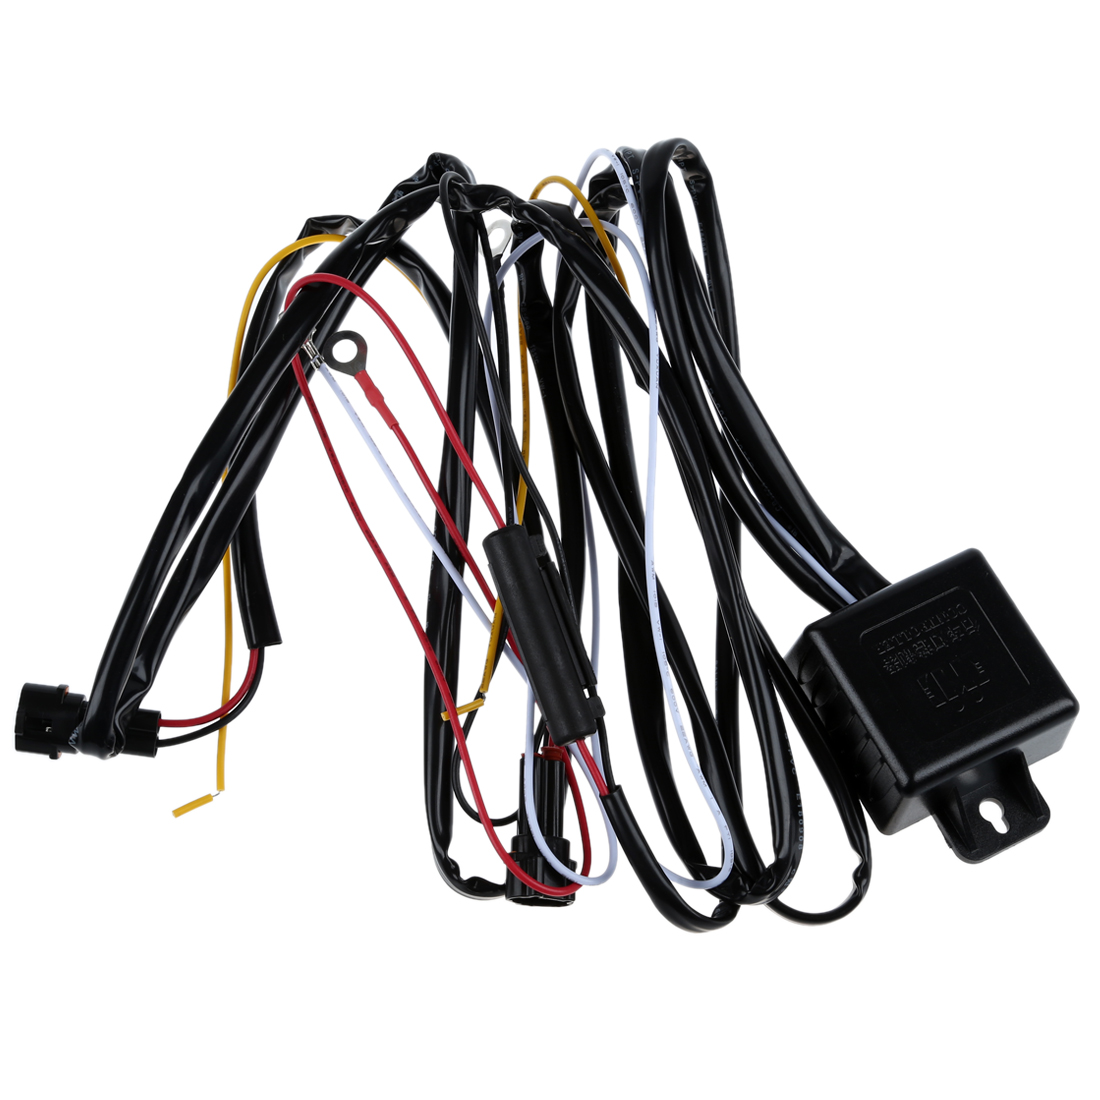 DRL Daytime Running Light Relay Harness Auto Car Control On/Off Switch 12V